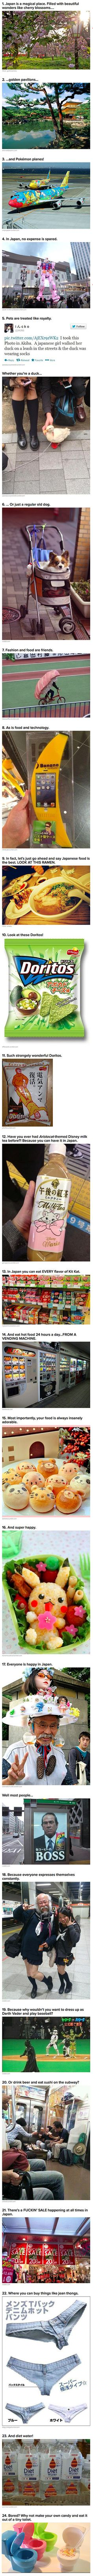 Here are some funny and geeky reasons why you should visit Japan.